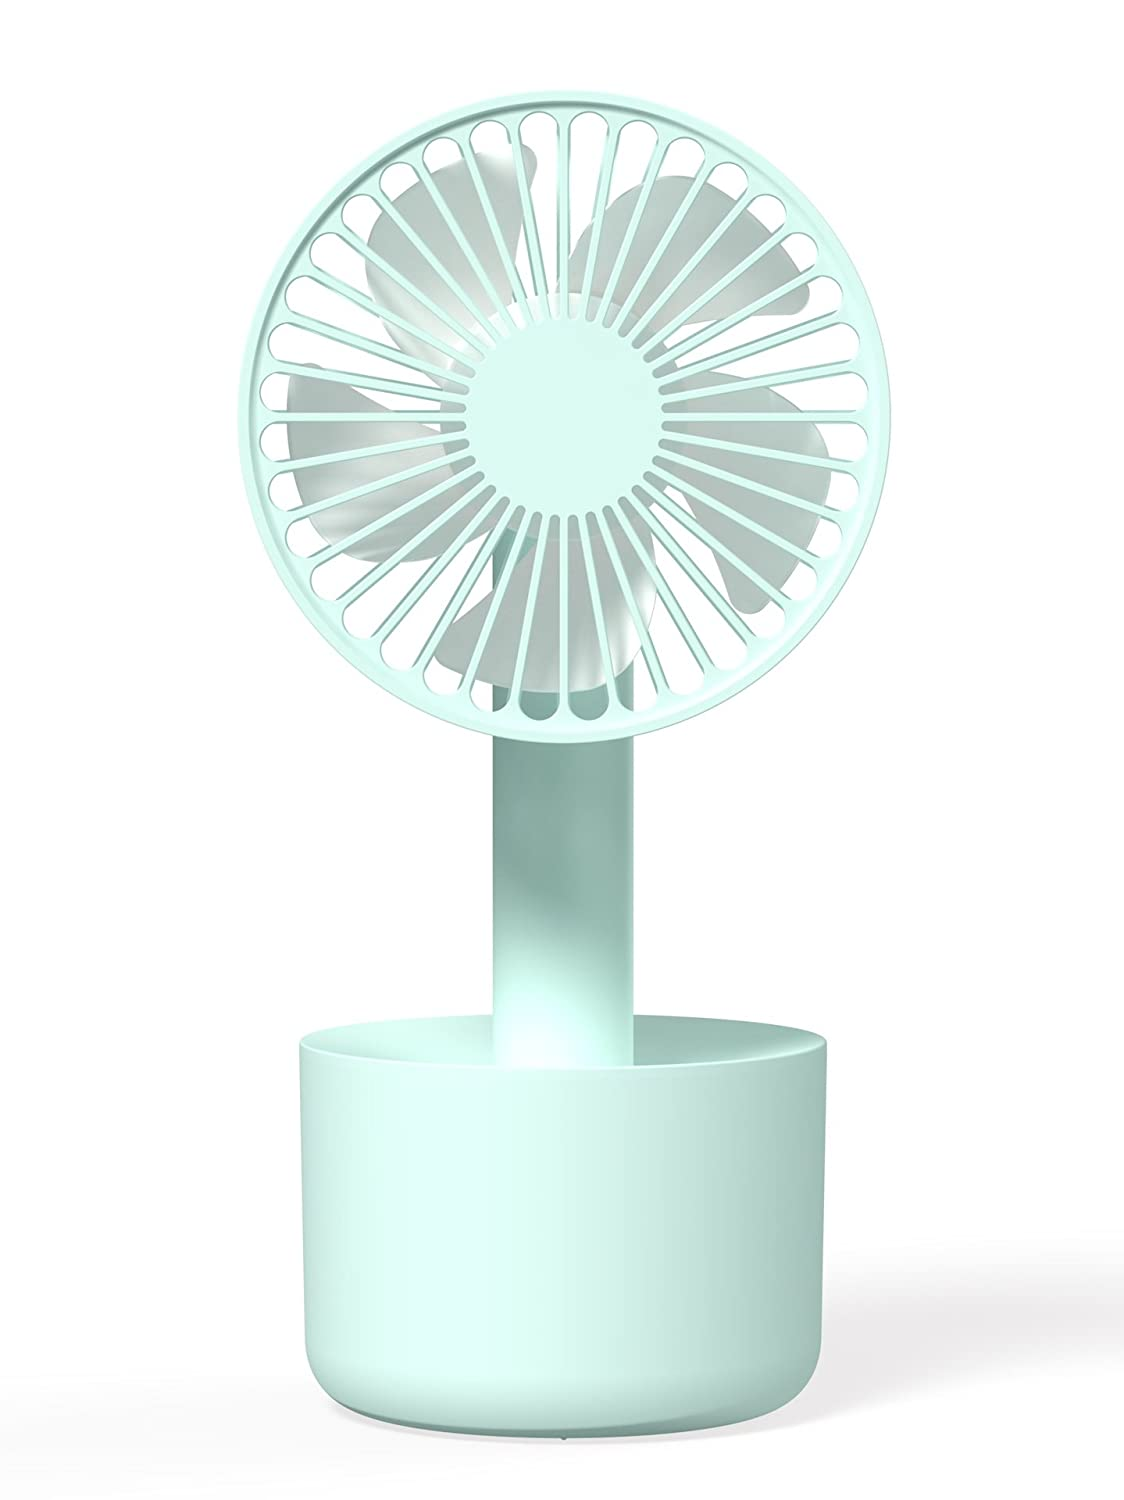 Xitai The Charging Fan Mini Usb Portable Electric Fans Green Kipas Fortable High Quality